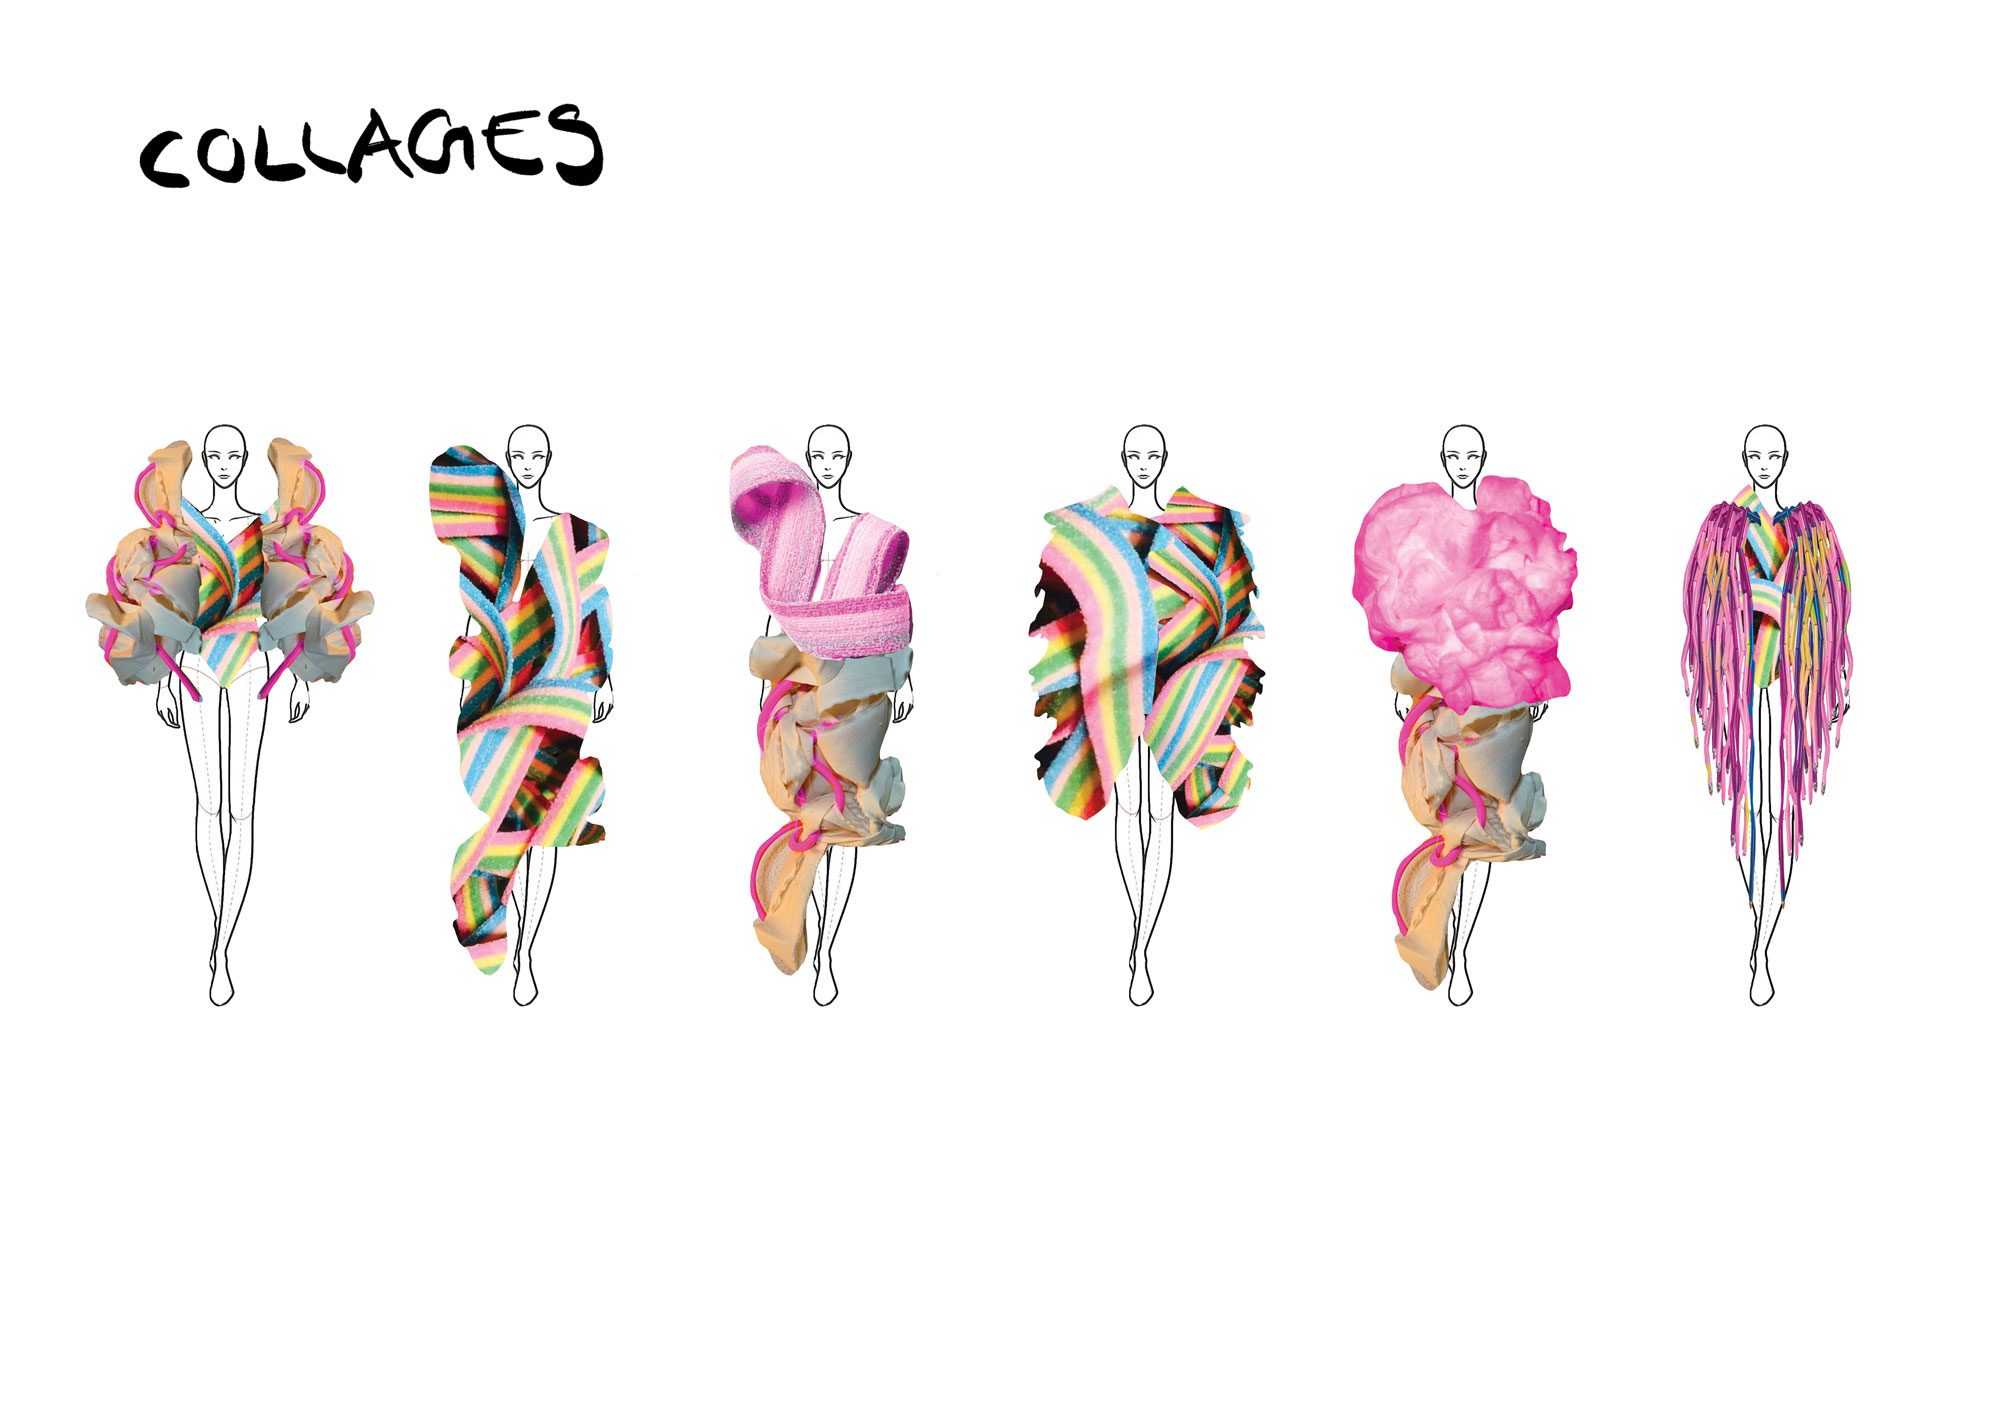 An image of Annina's work showing different confectionary being used as clothes